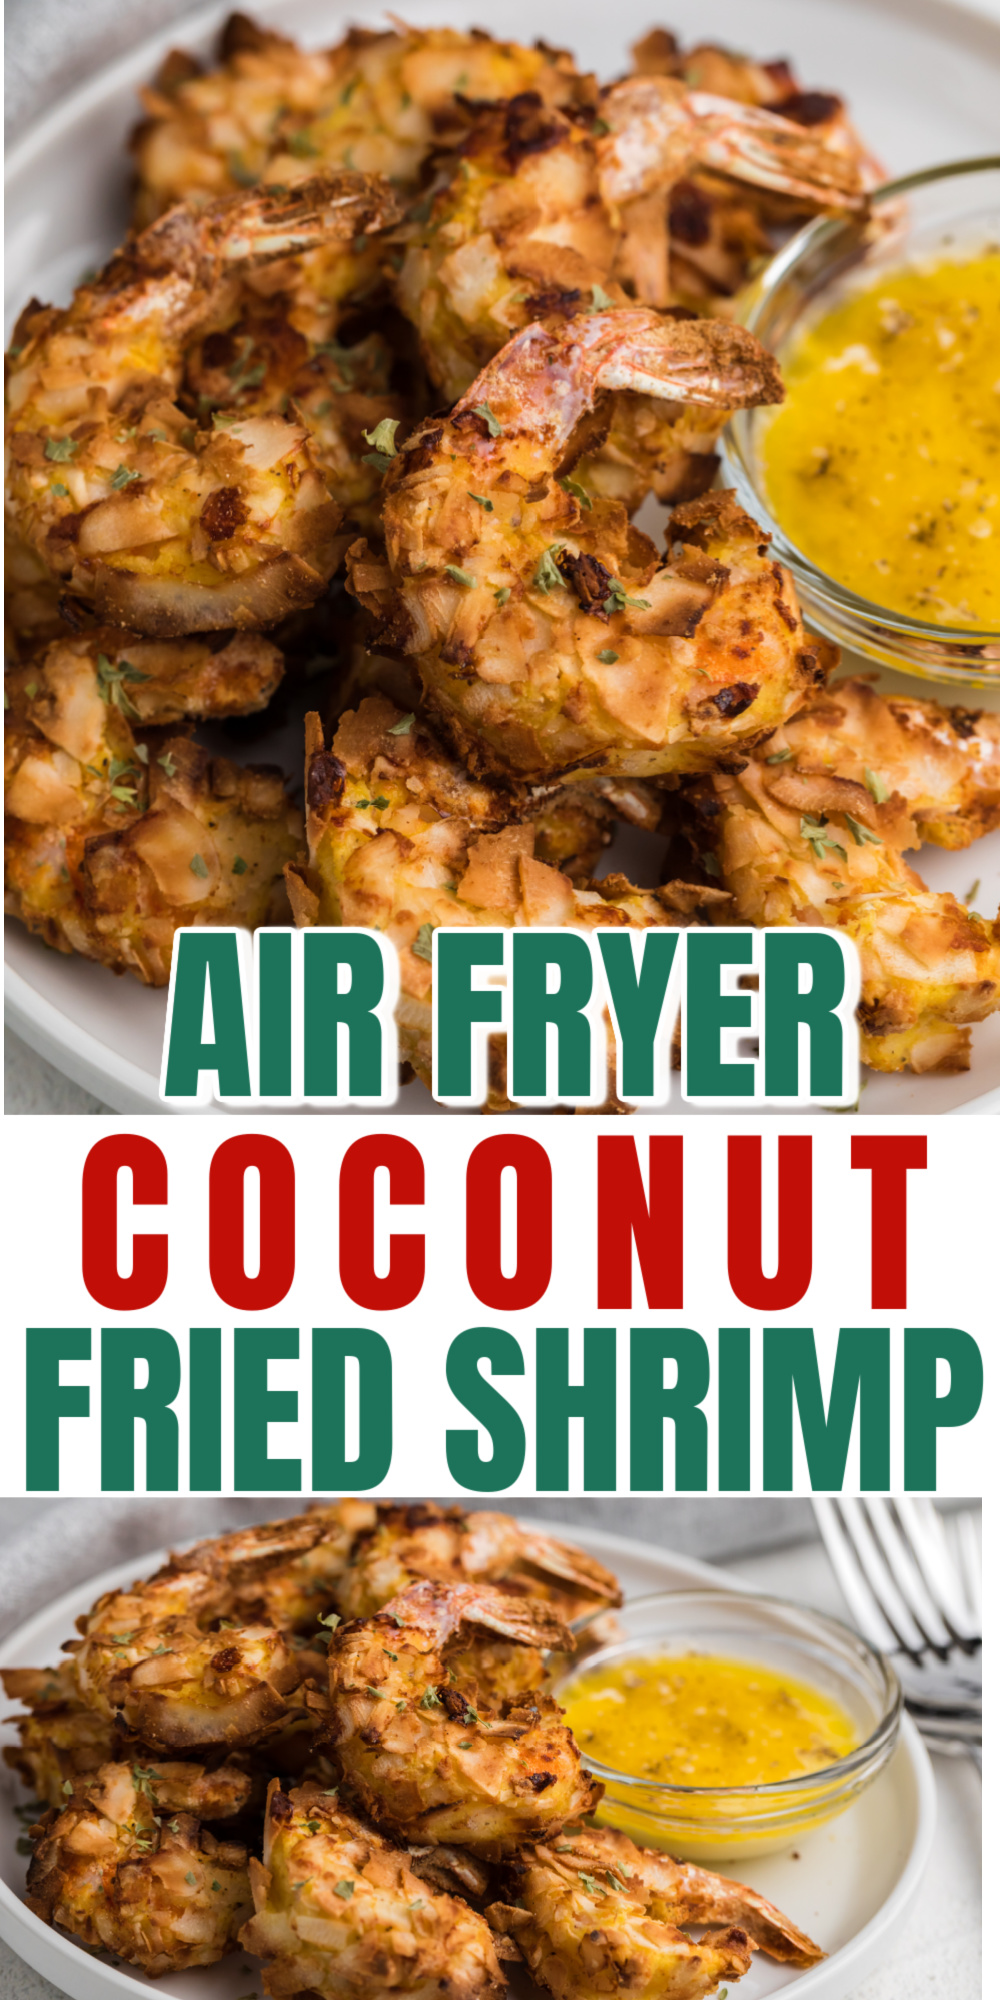 Air Fryer Coconut Shrimp is a keto-friendly fried shrimp recipe made with just a handful of ingredients in less than 20 minutes. You'll love how quick and easy this recipe is to make! It's an easy air fryer recipe the whole family will enjoy.